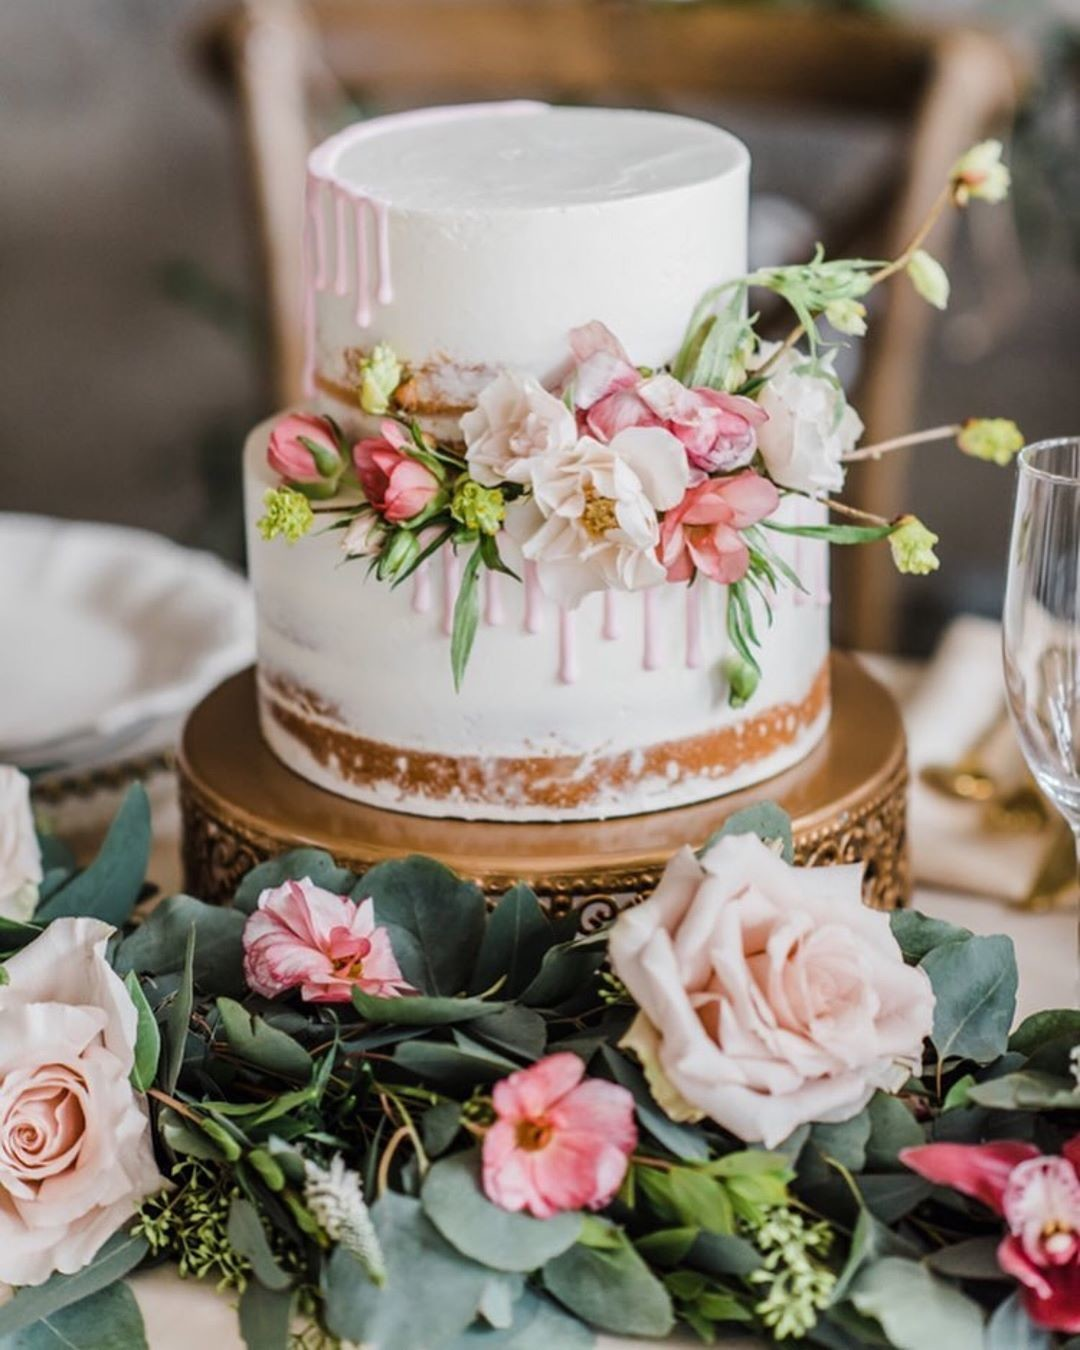 Topping off your beautiful wedding cake with 🌸fresh flowers *almost* makes it too pretty to eat! via